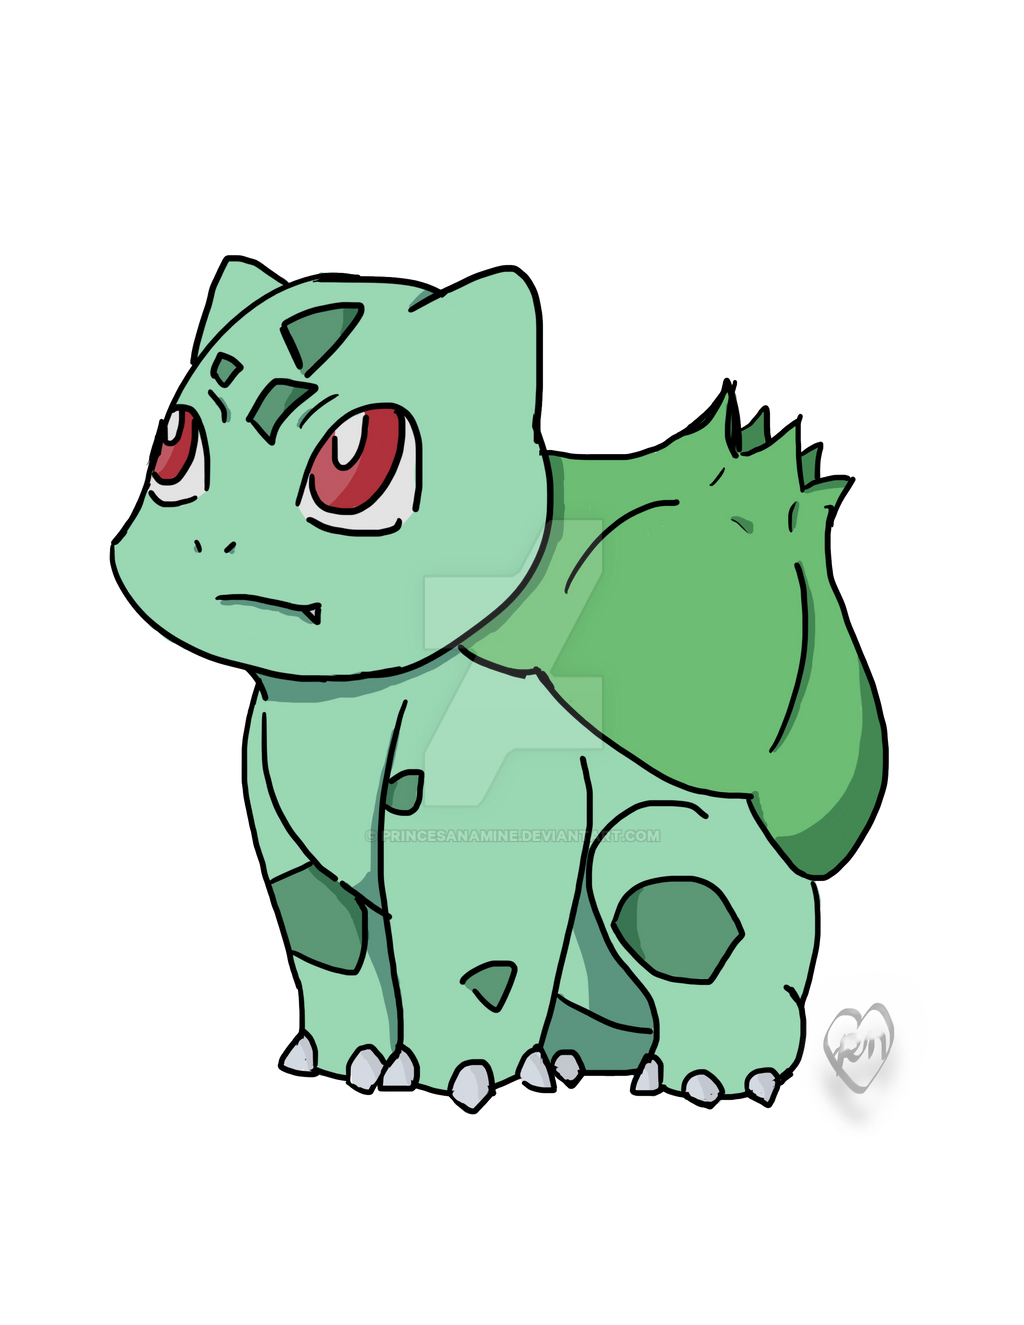 Bulbasaur by PrincesaNamine